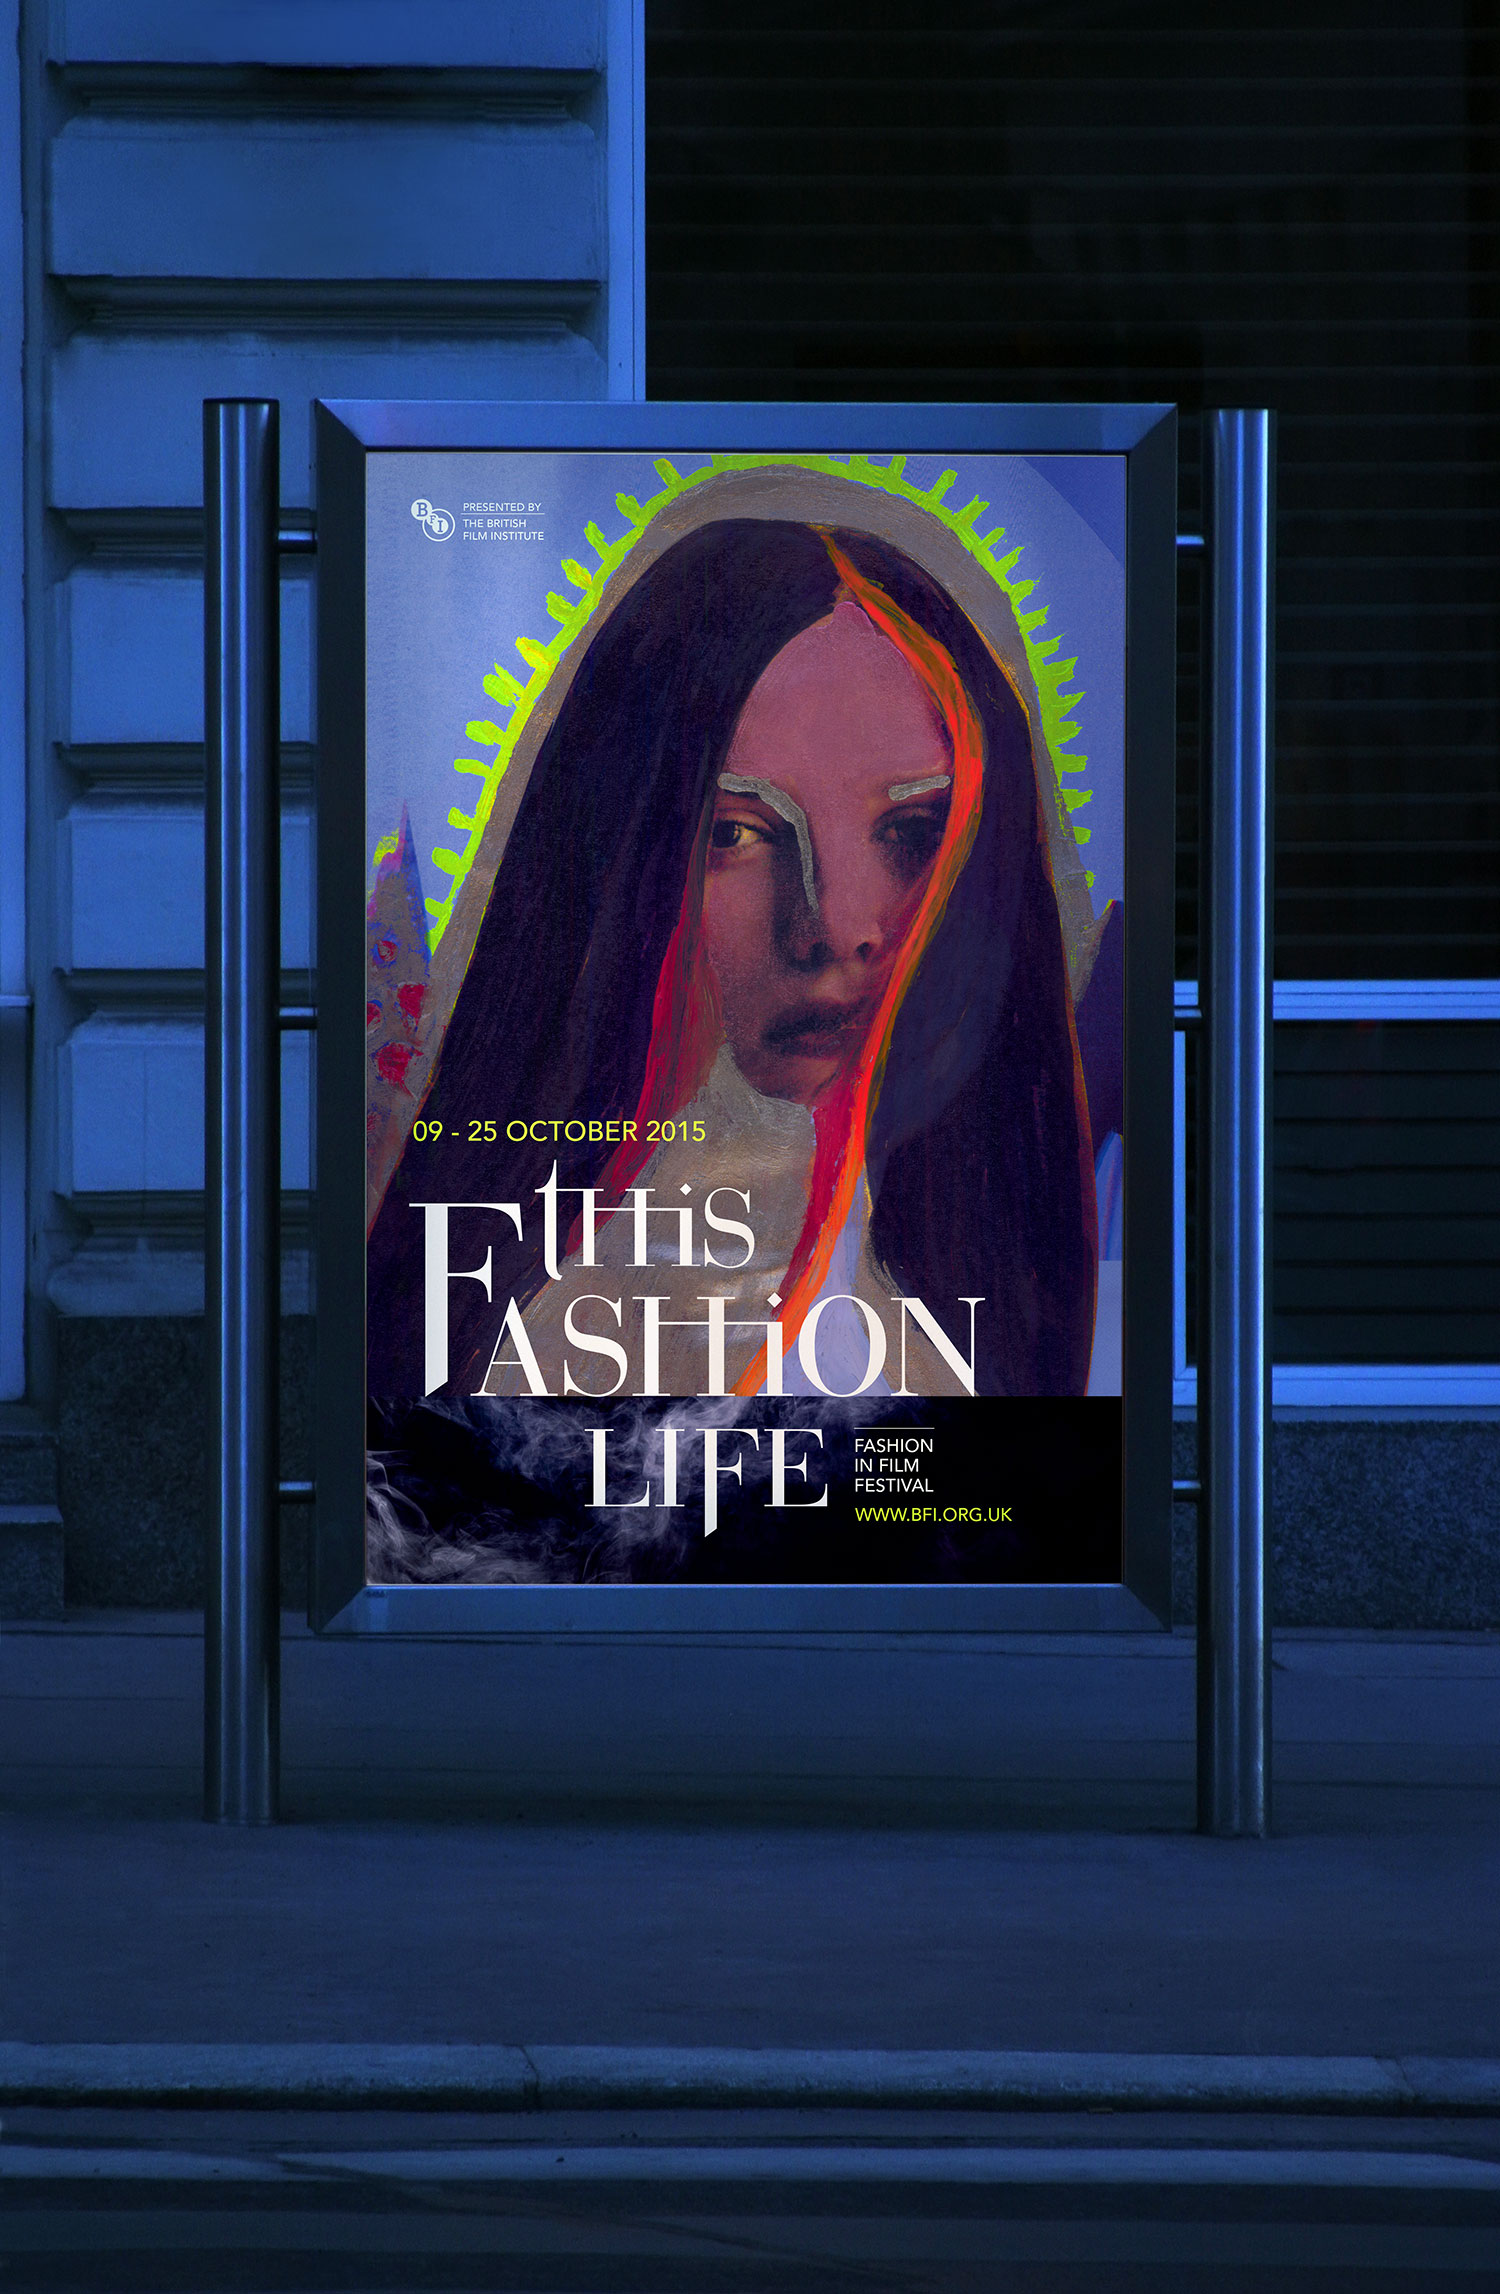 Graphic design and fashion film festival poster concept, featuring hand painted fashion model and Romeo & Juliet inspired typography.